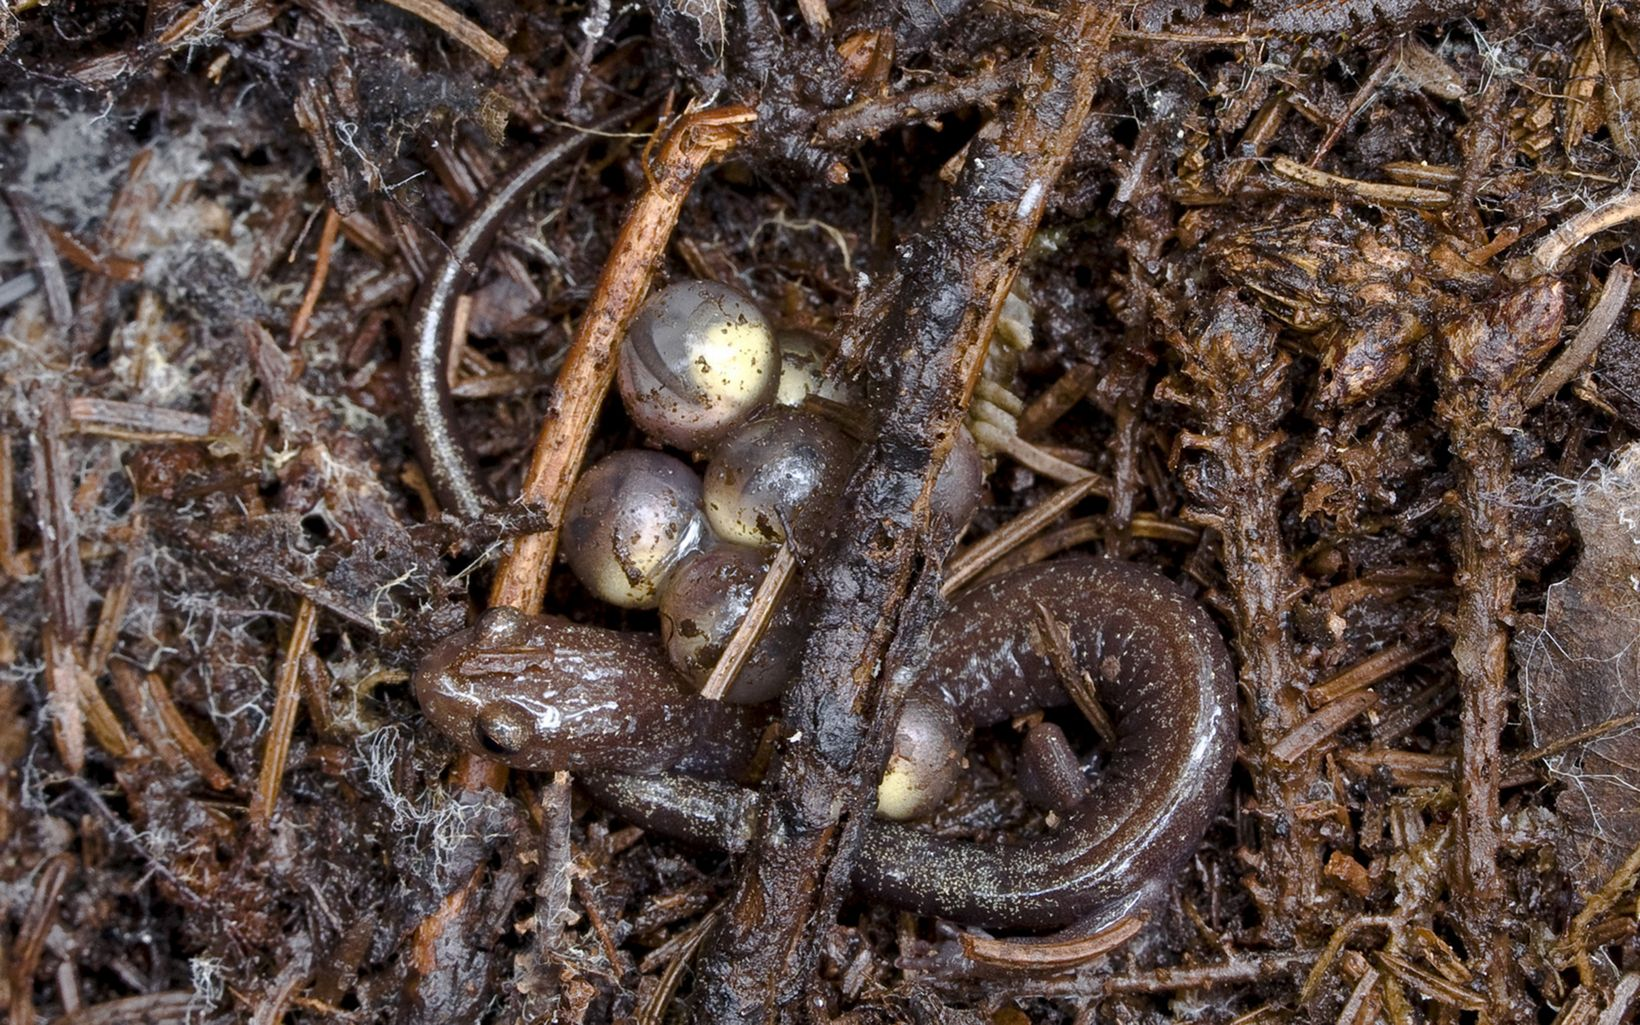 A threatened woodland salamander found only on Cheat Mountain, and a few nearby mountains, in the eastern highlands of West Virginia.